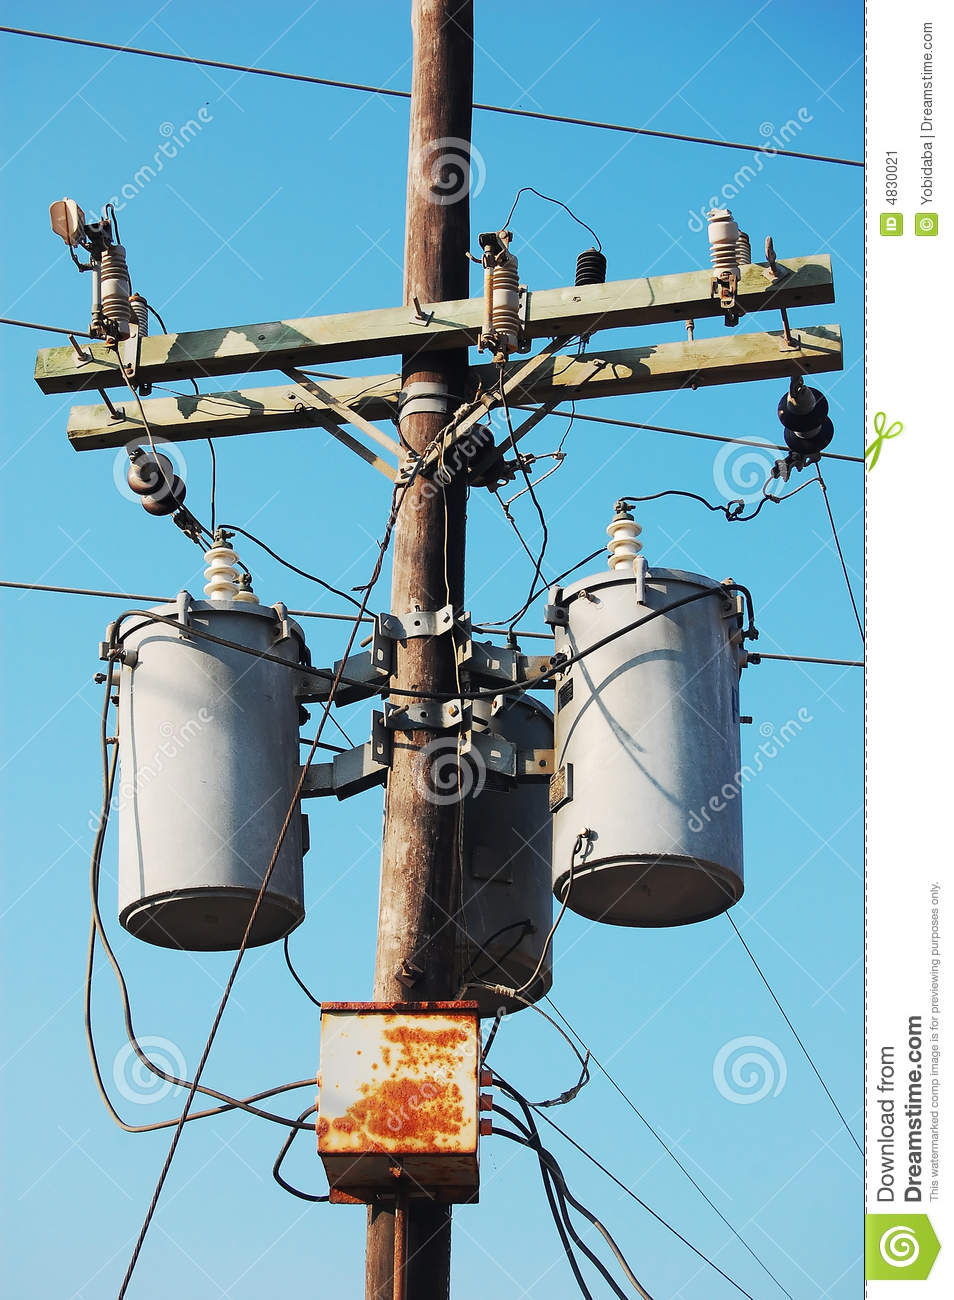 electrical post with transformer stock image image of lines